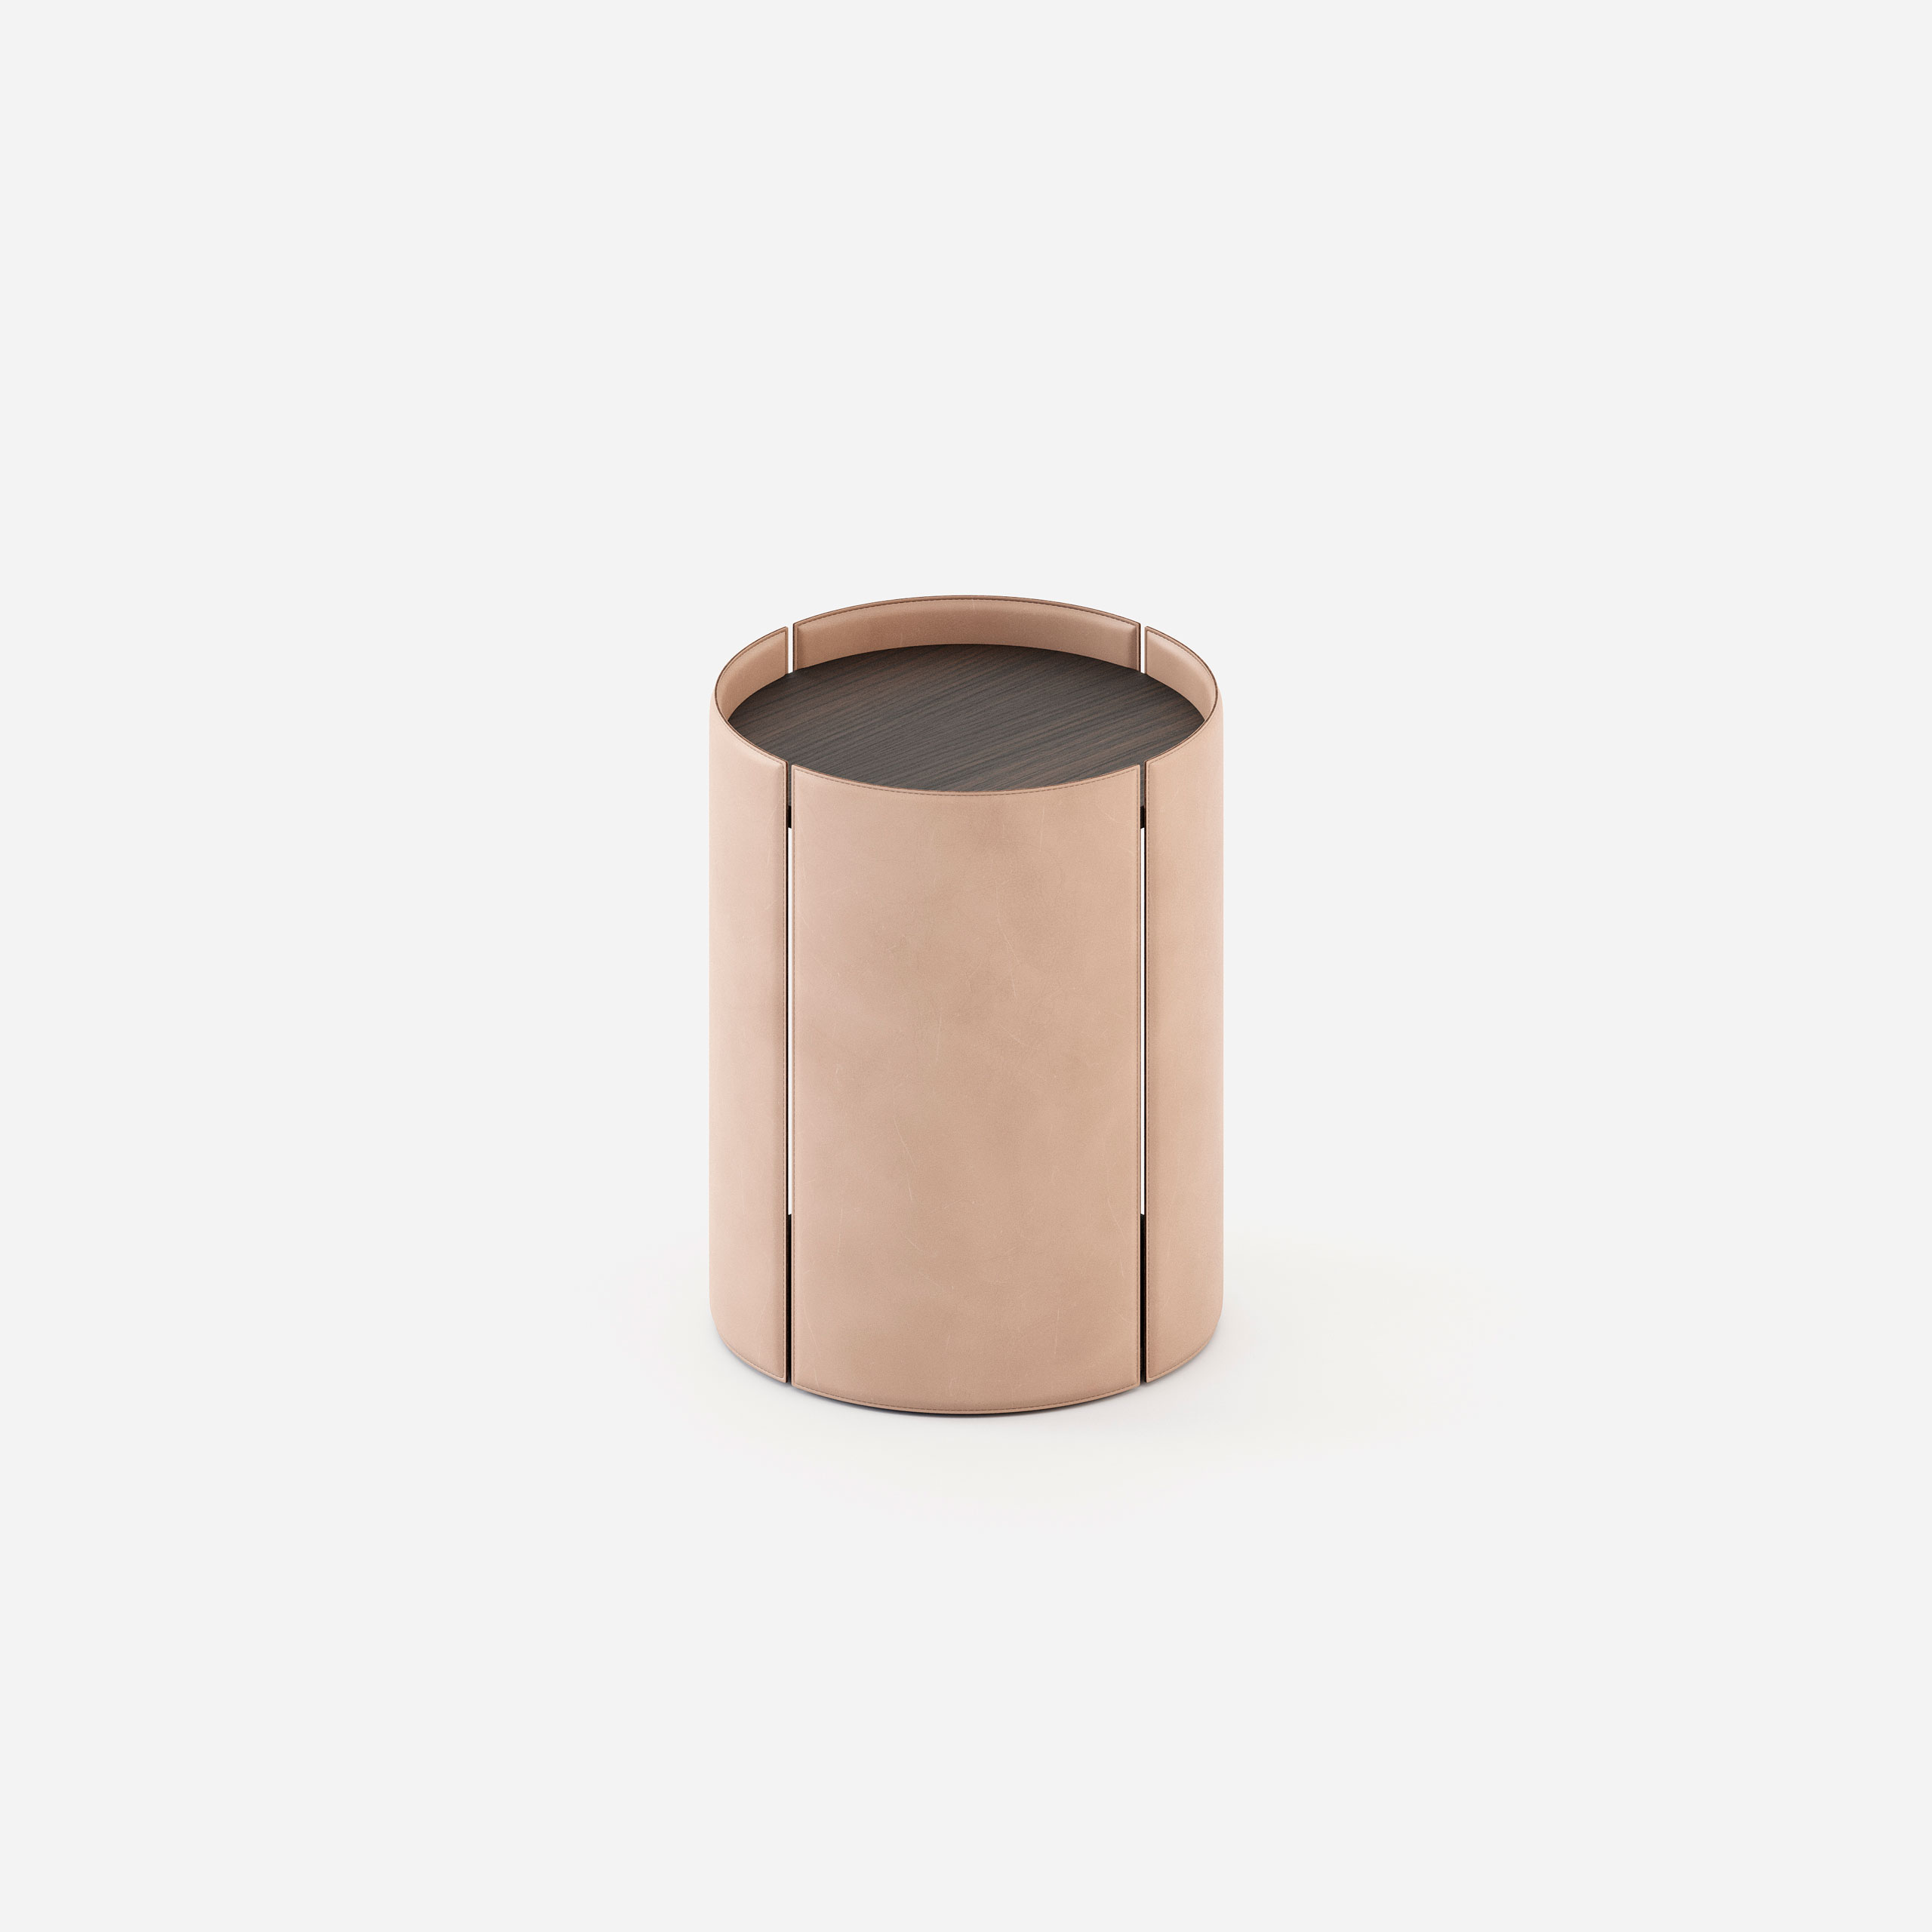 mano-side-table-natural-leather-new-collection-domkapa-2